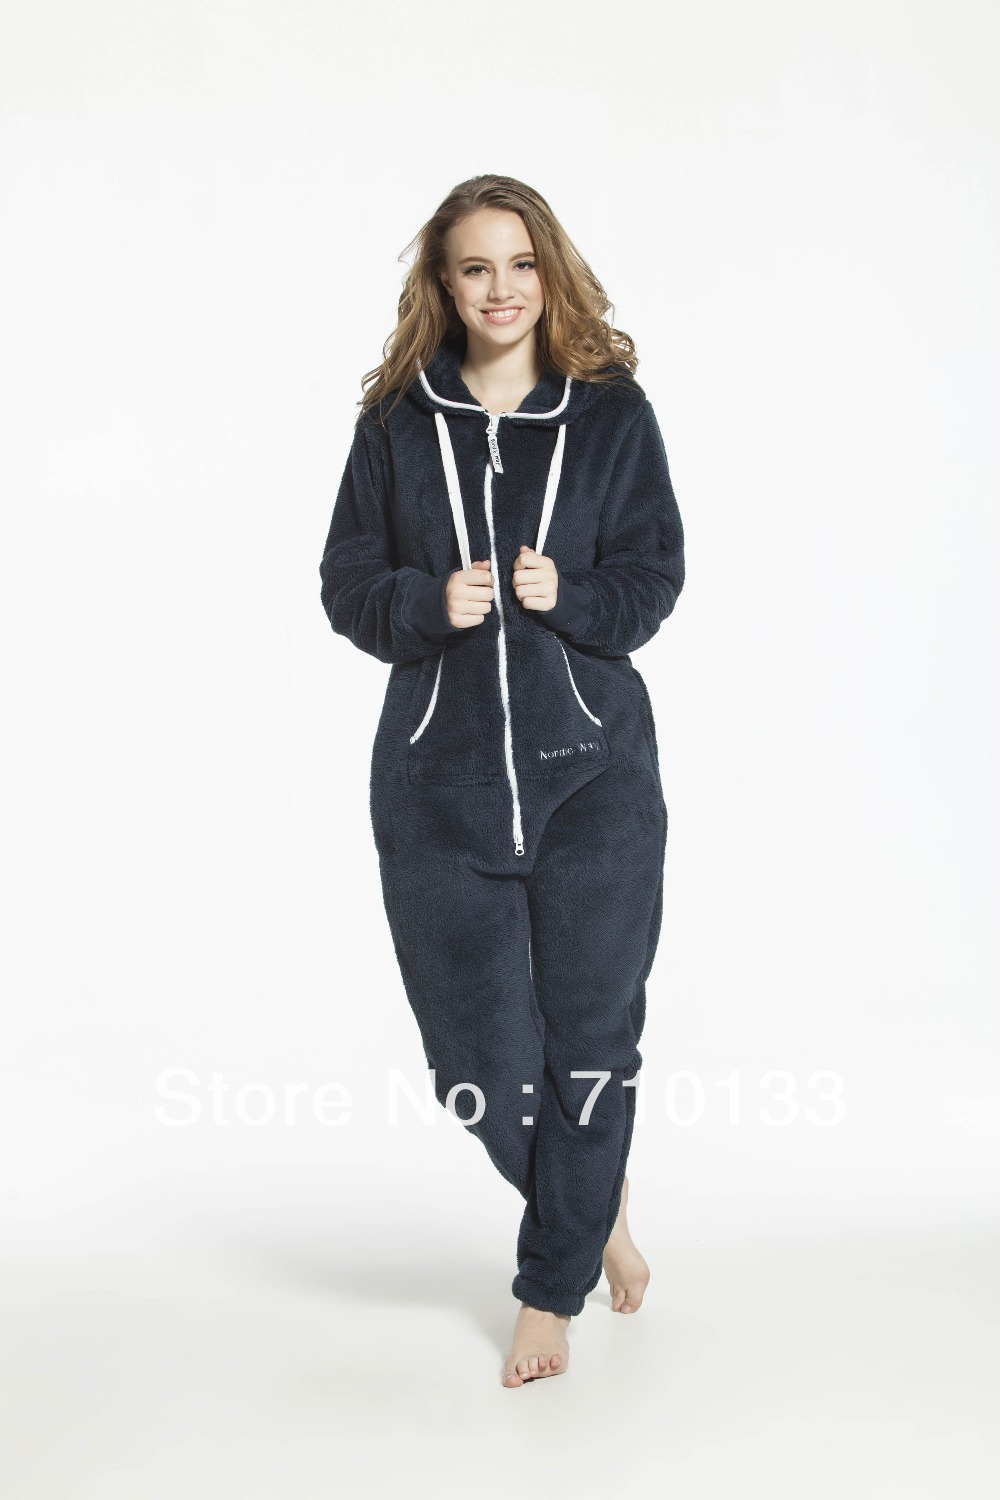 einteiliger Overall All-in-One-Anzug für Erwachsene (unisex) Fleece Jump-in-Suit-All-in-One-Overall aus Teddy-Fleece